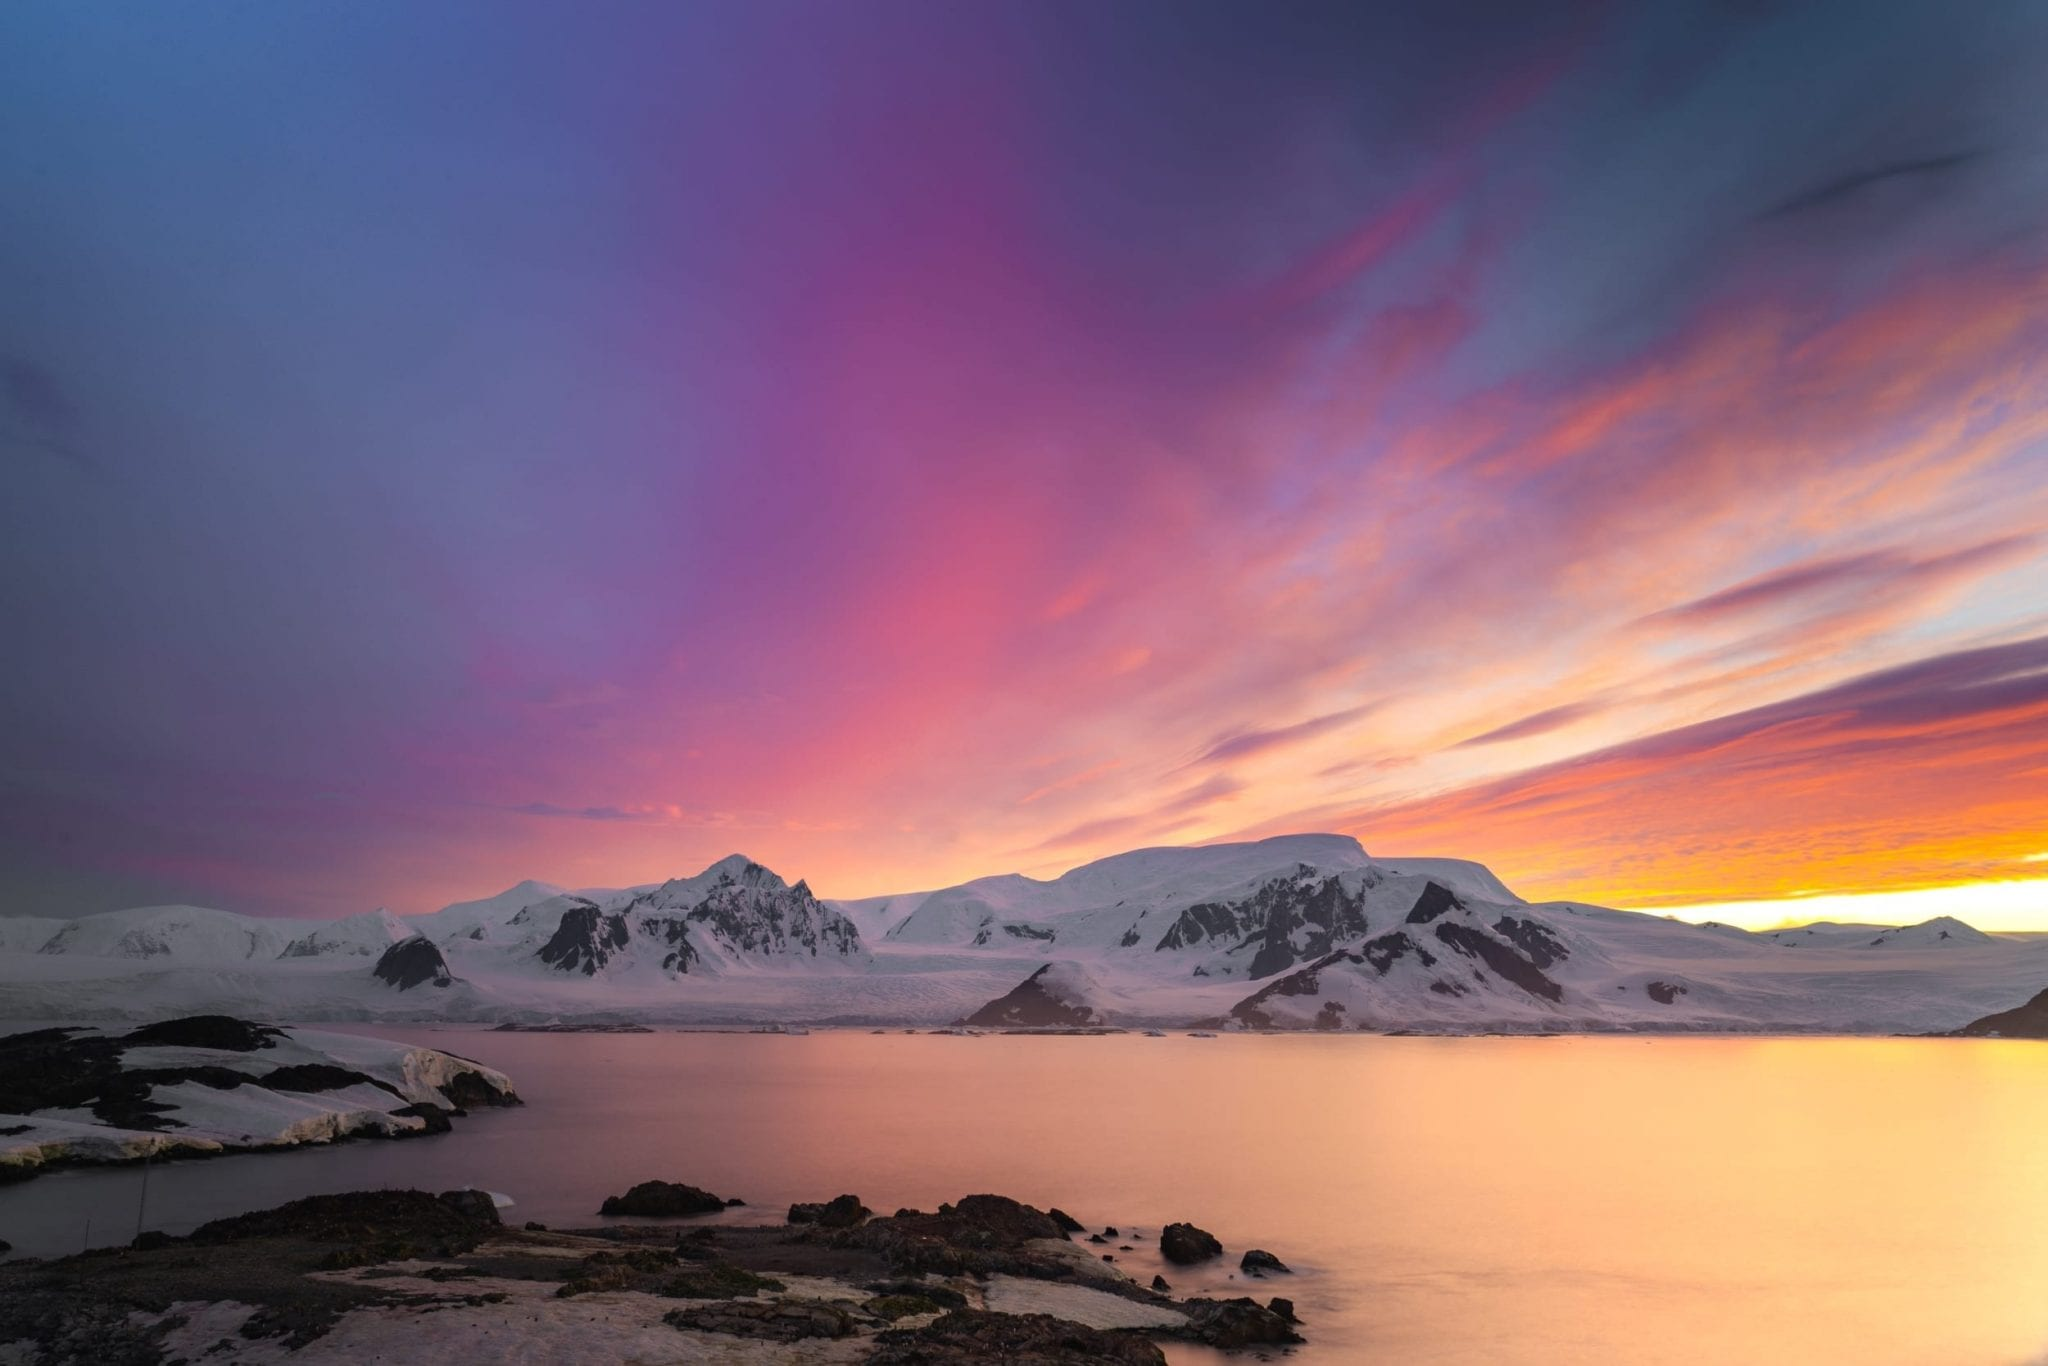 Brightly colored sunset over Antarctica's mountains.